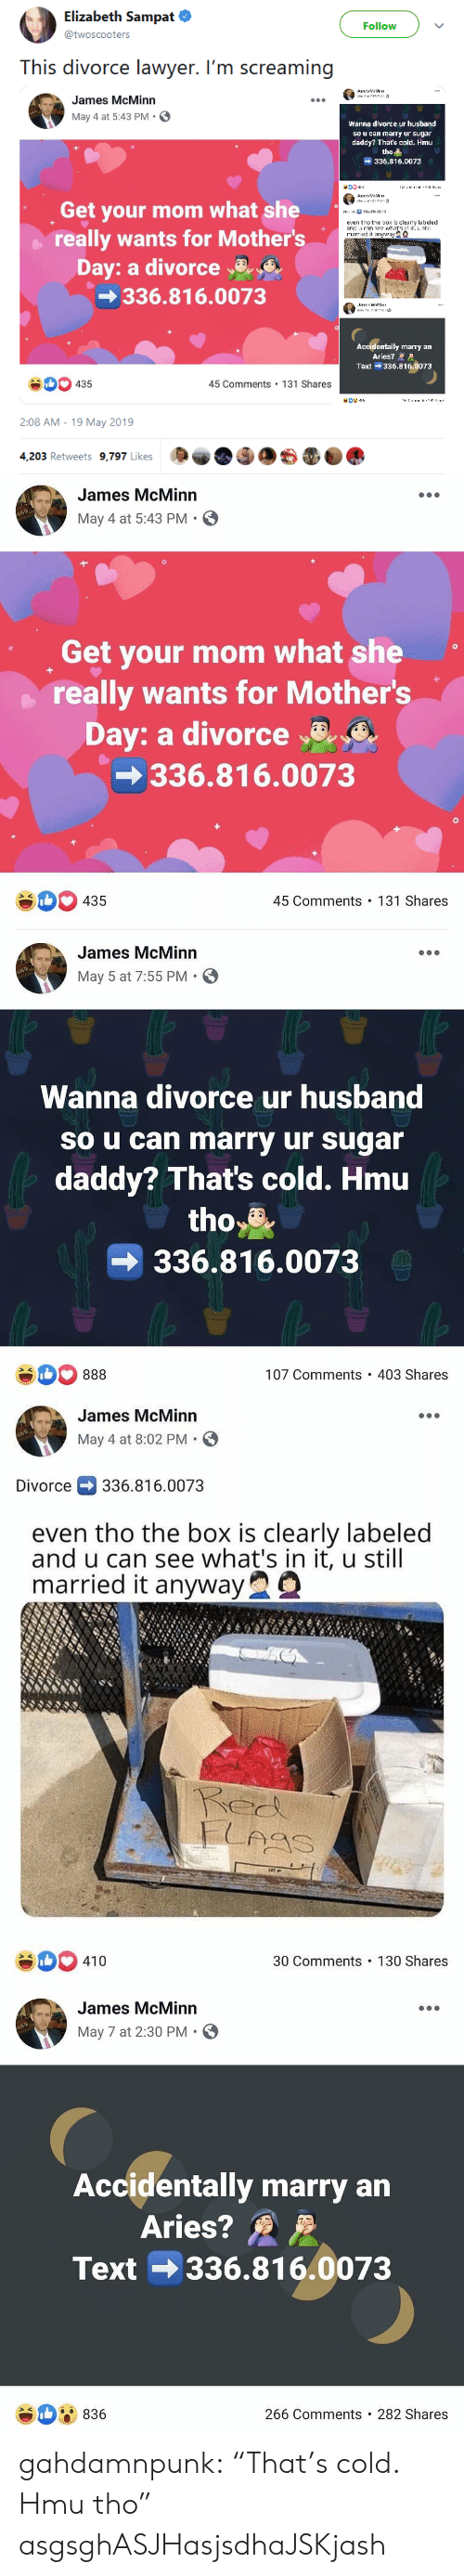 """Aries: Elizabeth Sampat  Follow  @twoscooters  This divorce lawyer. I'm screaming  James McMinn  May 4 at 5:43 PM.  Wanna dlvorce ur husband  so u can marry ur sugar  daddy? That's cold. Hmu  ャ  tho  336.816.0073  Get your mom what she  even tho te  clealebeled  really wants for Mother's  Day: a divorceaE  336.816.0073  lly marry an  Aries? A  Text 336.816.0073  Ac  0435  45 Comments 131 Shares  2:08 AM -19 May 2019  4,203 Retweets 9,797 Likes   James McMinn  May 4 at 5:43 PM.  Get your mom what she  really wants for Mother's  Day: a divorce  336.816.0073  #00 435  45 Comments 131 Shares   James McMinn  May 5 at 7:55 PM  Wanna divorce ur husband  so u can marry ur sugar  daddy? That's cold. Hmu  tho*  336.816.0073  107 Comments 403 Shares   James McMinn  May 4 at 8:02 PM.  Divorce336.816.0073  even tho the box is clearly labeled  and u can see what's in it, u still  married it anywayQ  xNx  30 Comments 130 Shares  410   James McMinn  May 7 at 2:30 PM S  Accidentally marry an  Aries?  Text 336.816.0073  836  266 Comments 282 Shares gahdamnpunk:  """"That's cold. Hmu tho"""" asgsghASJHasjsdhaJSKjash"""